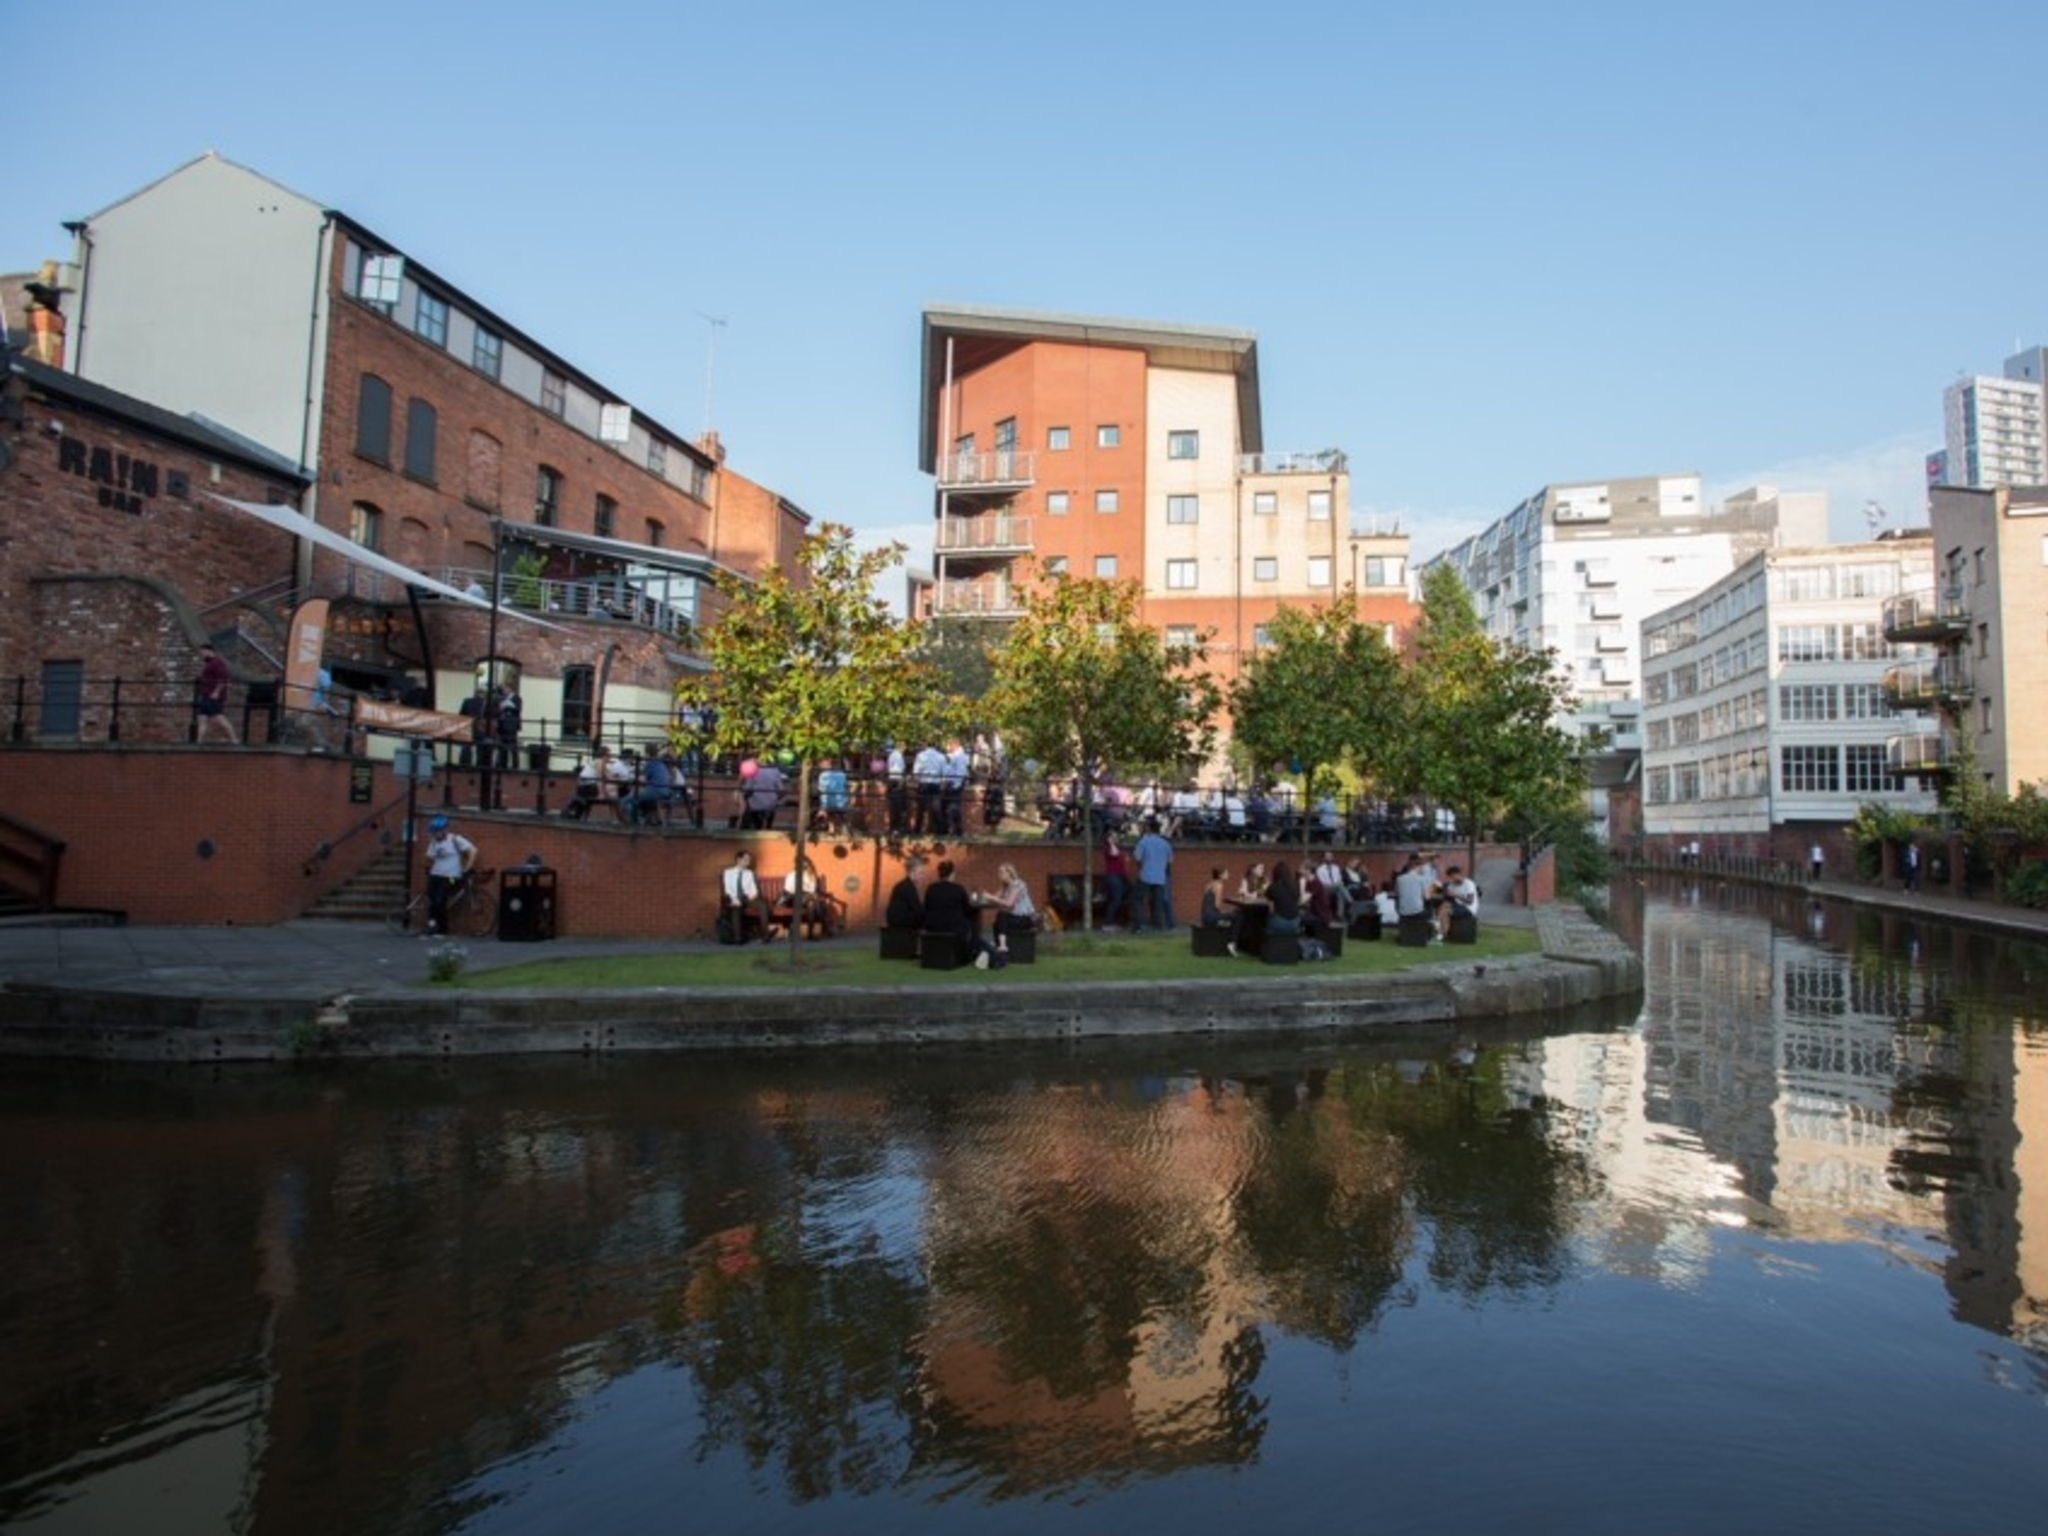 People drinking next to the canalside